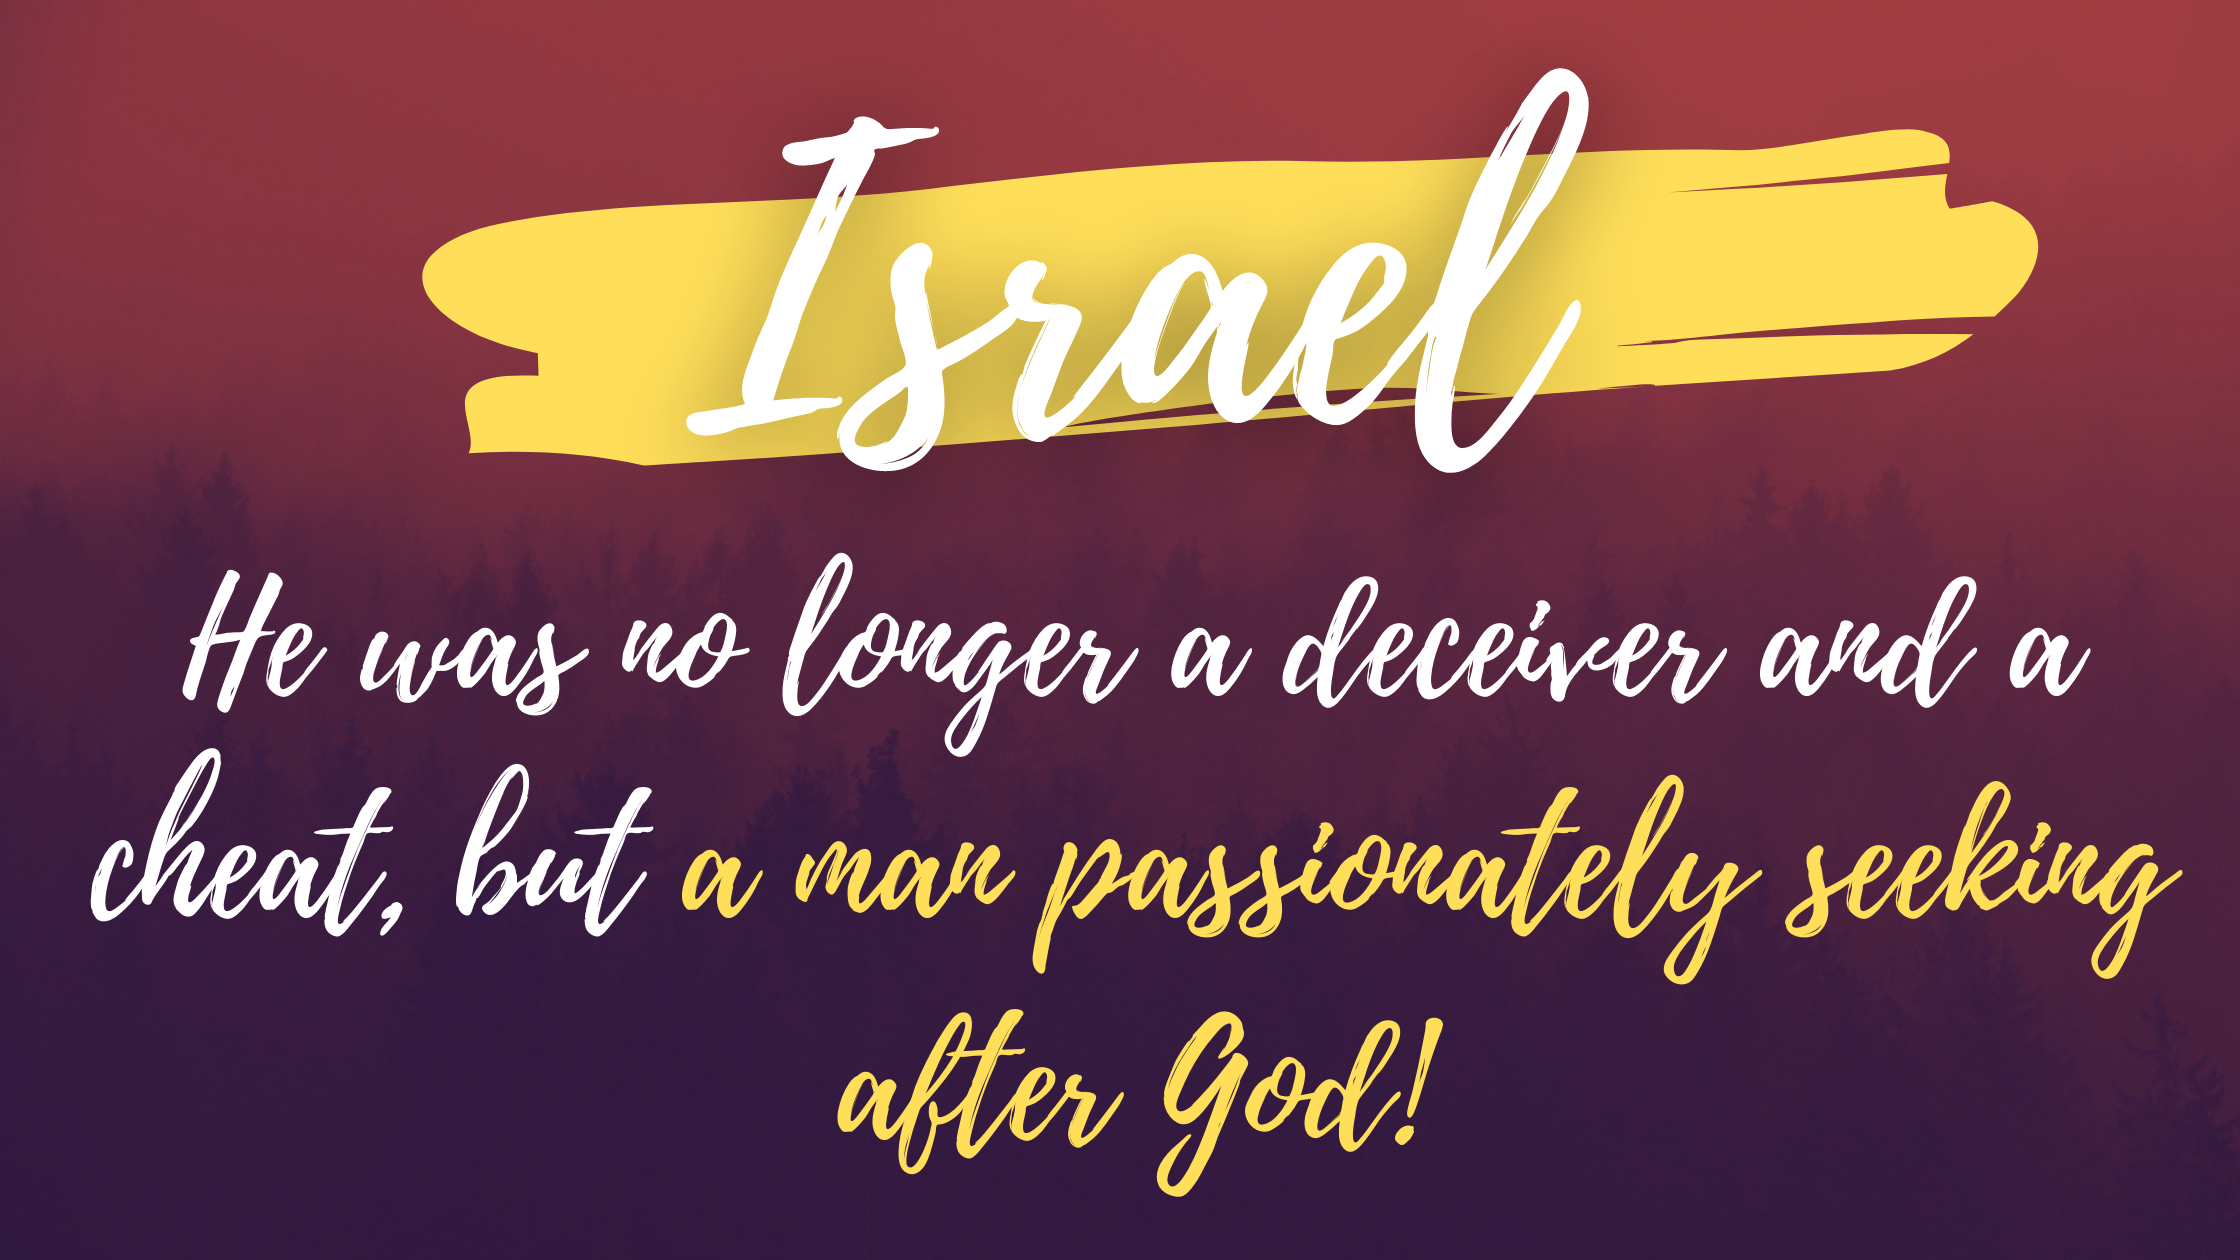 He was no longer a deceiver and a cheat, but a man passionately seeking after God!